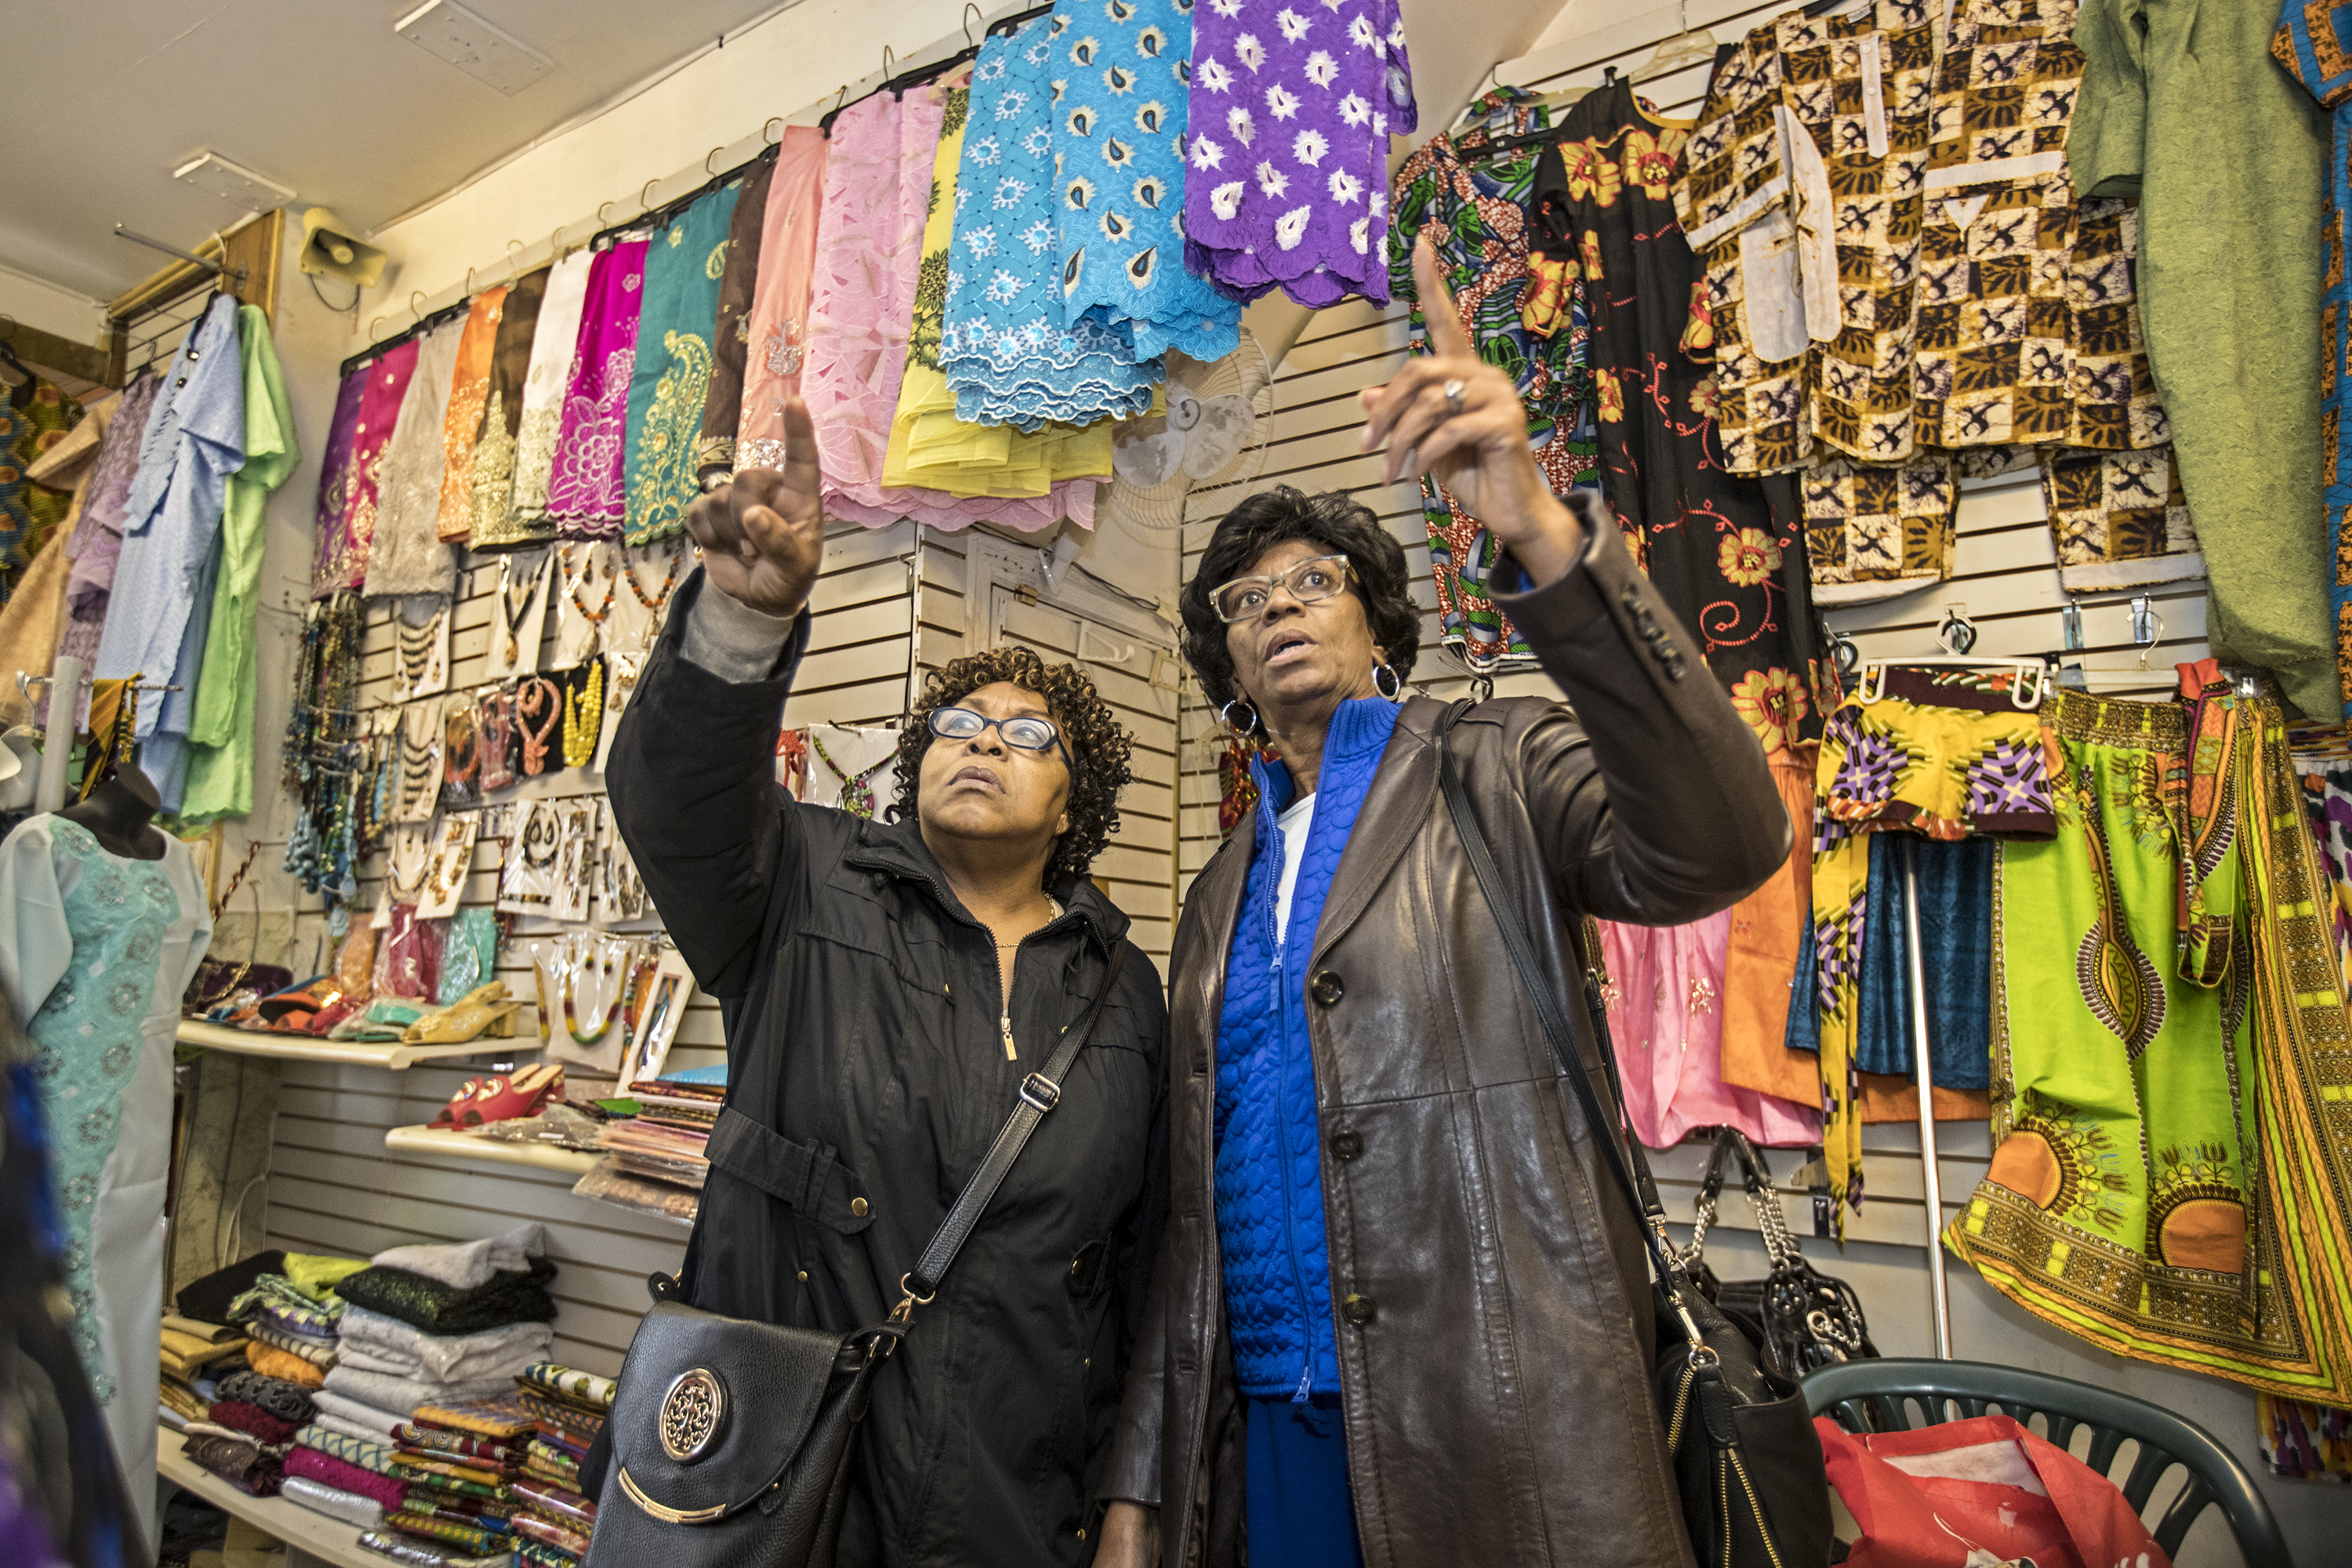 Mildred Burden, left, and Dolores Ryans, right, point out African-style dresses they like as they shop at Ngozi African Fashions.